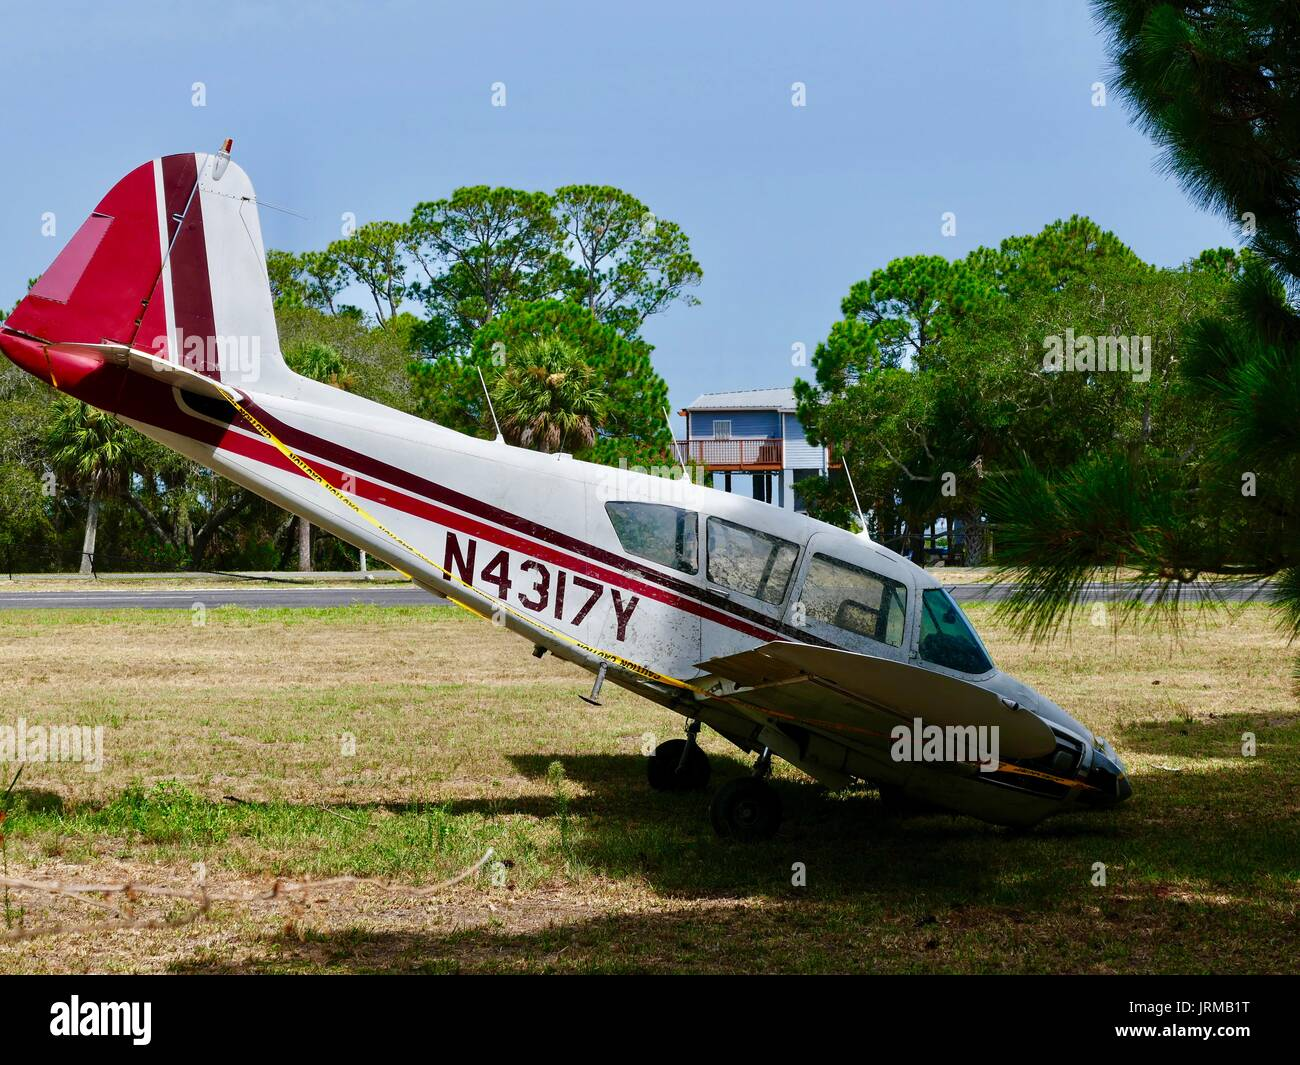 Piper PA 23 160 Apache damaged aircraft, runway overrun on 16 June 2017, no injuries, twin engine small plane, nose down. Cedar Key, Florida, USA. - Stock Image